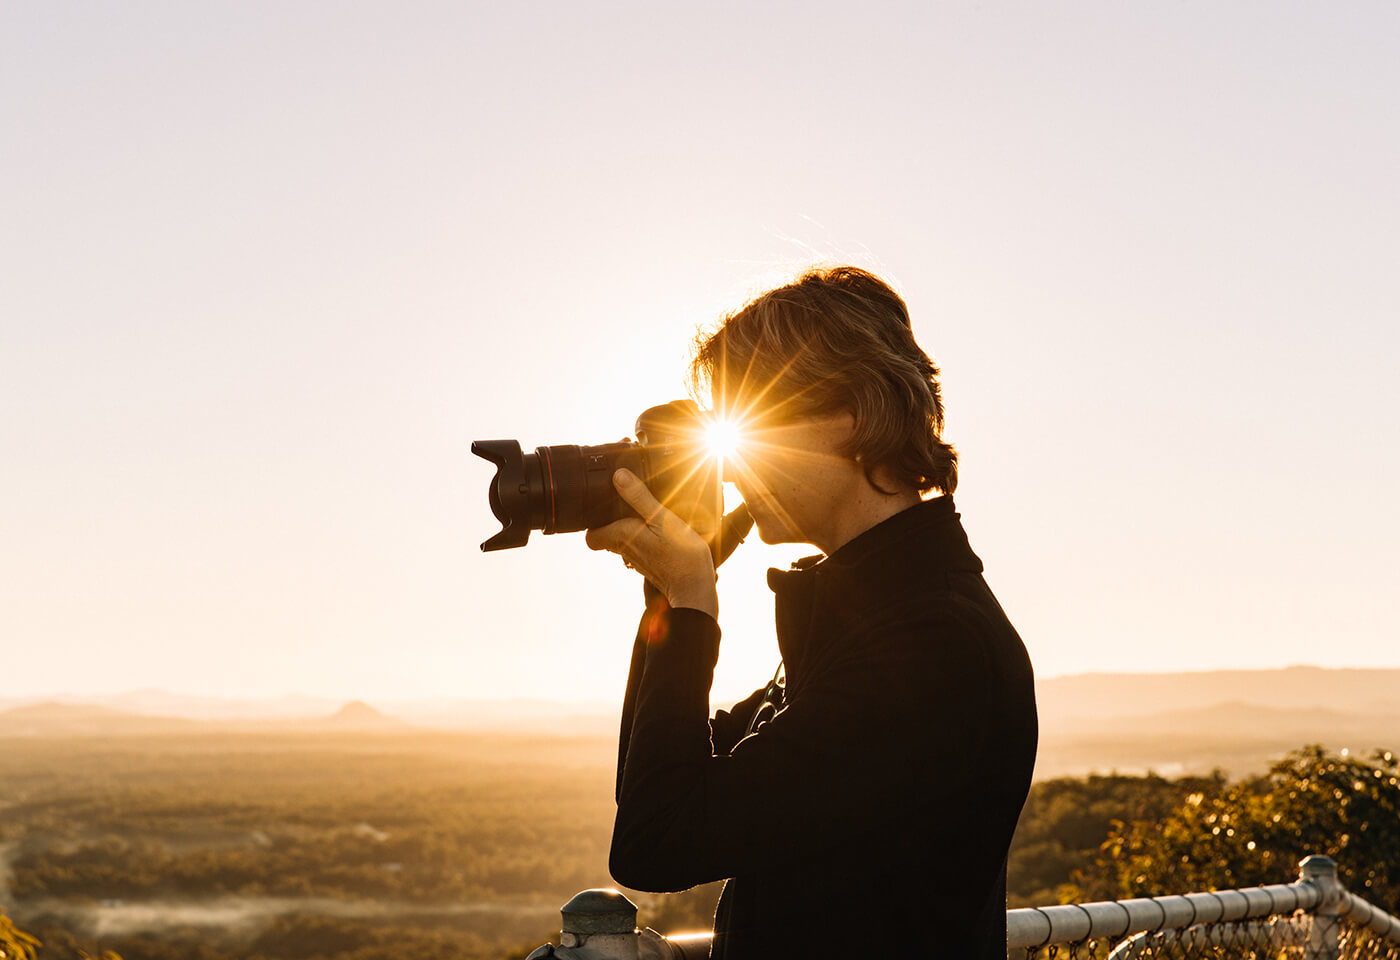 Image of photographer by Neal Walters